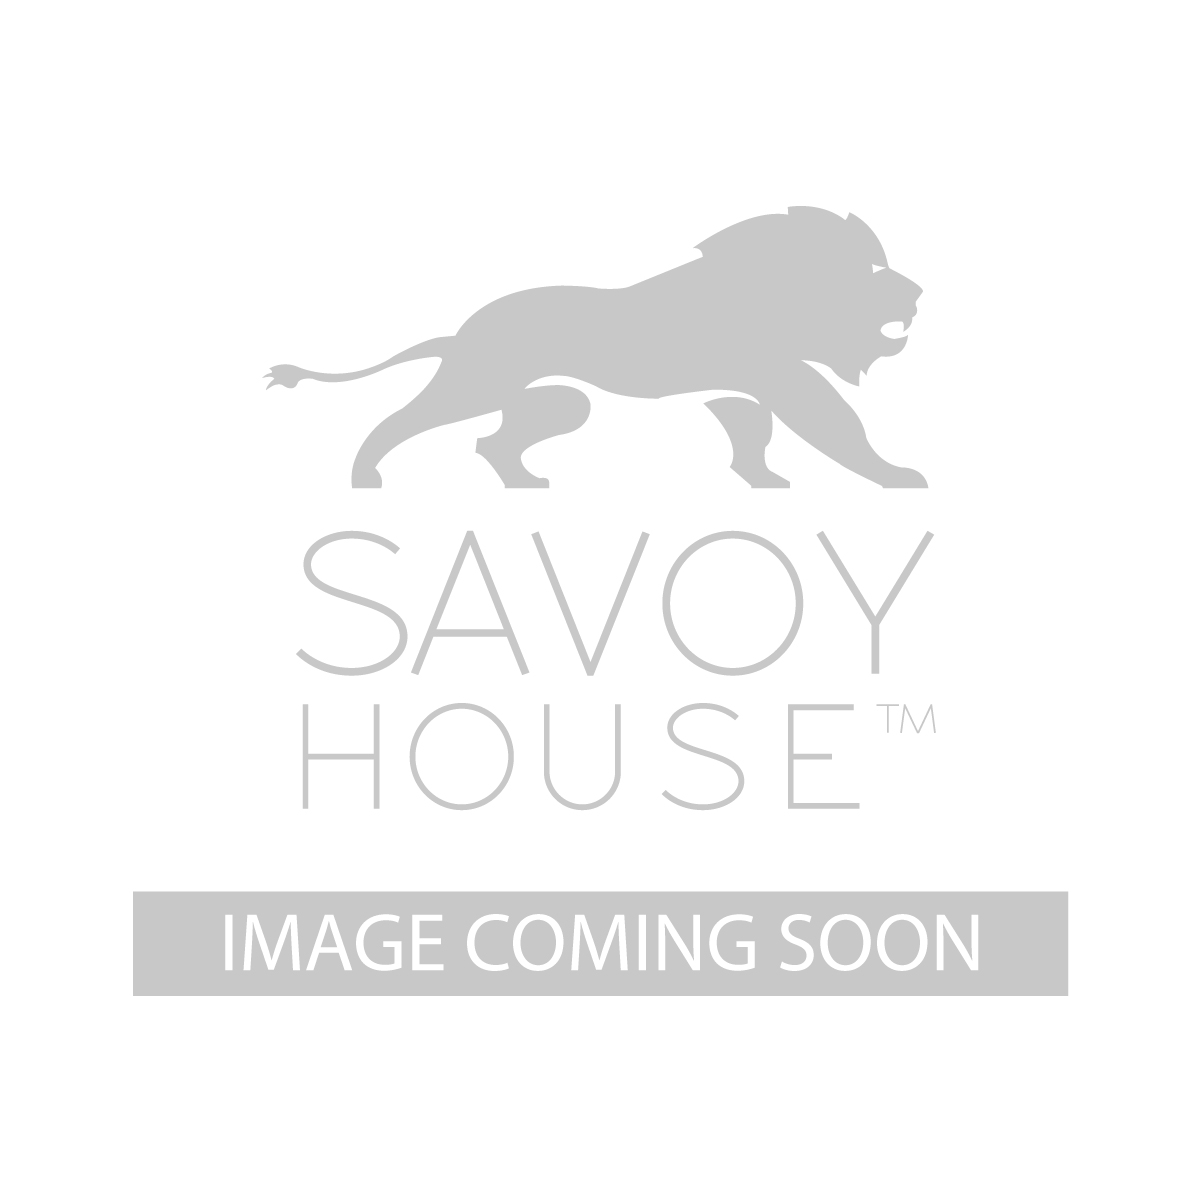 7 253 3 307 rosendal pendant by savoy house for Savoy house com